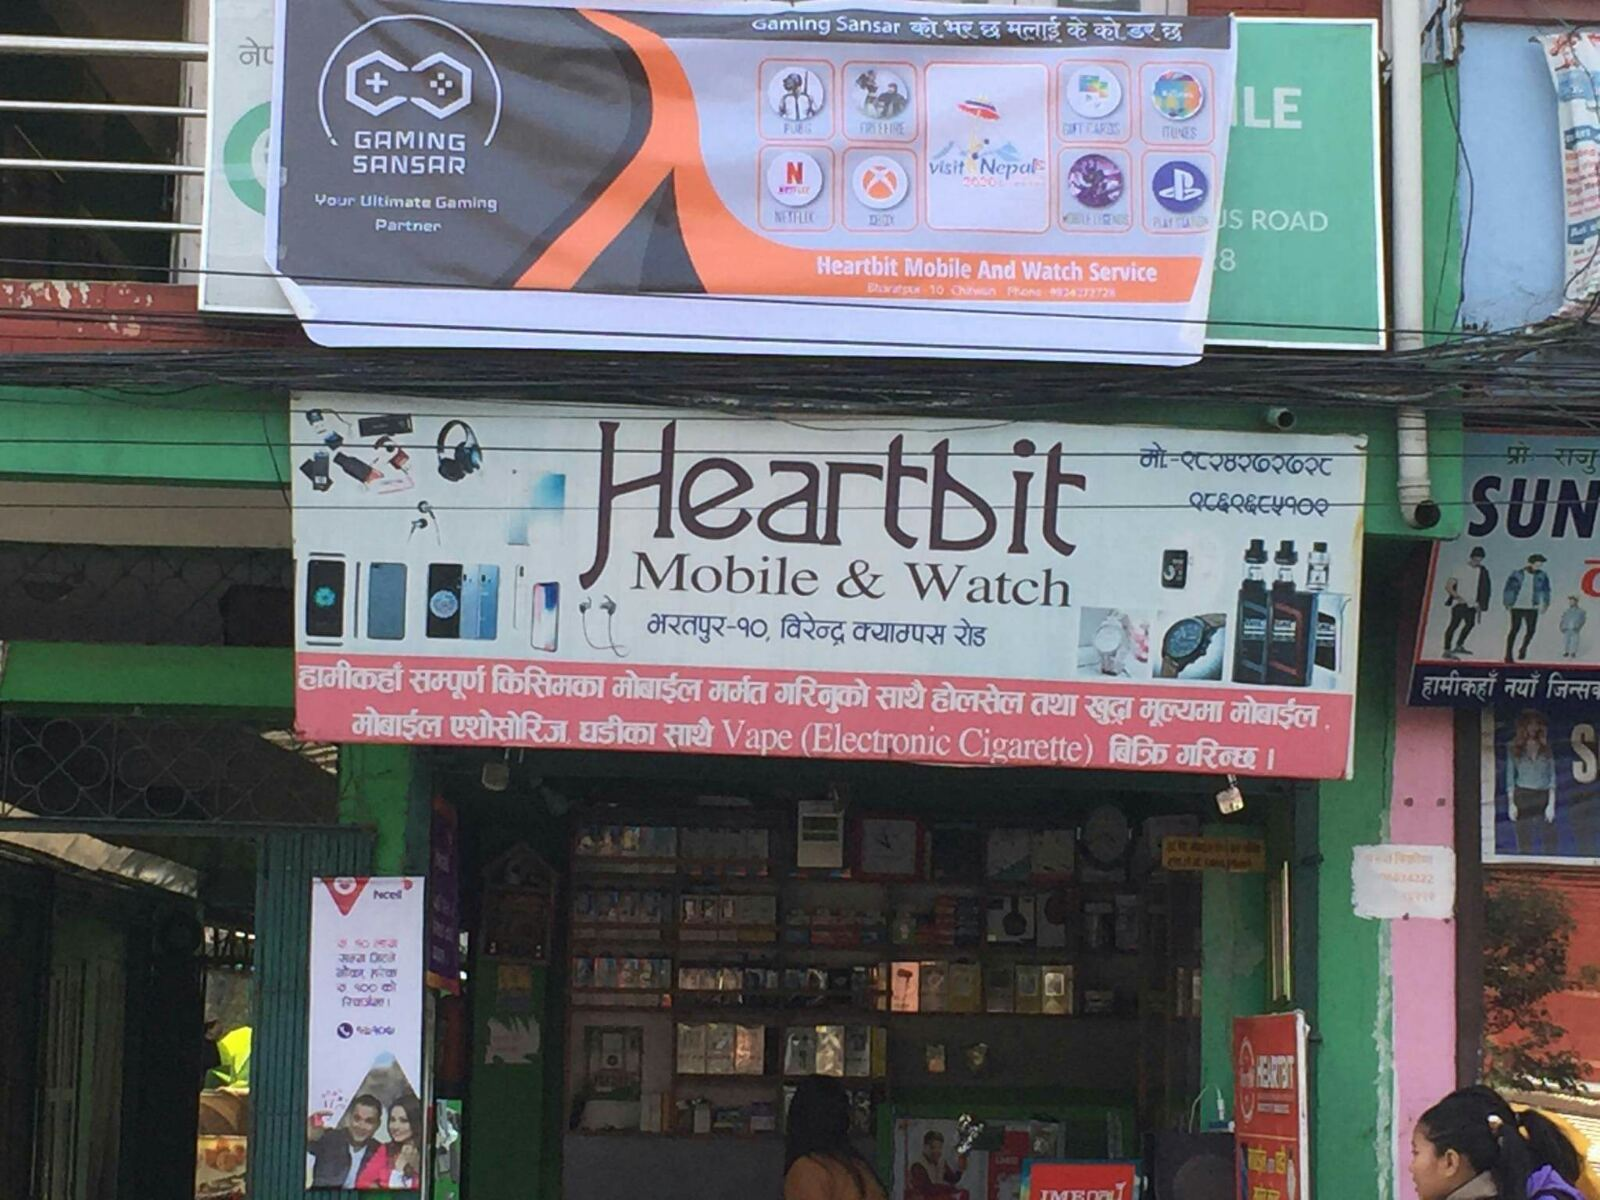 Heartbit Mobile and Watch Service